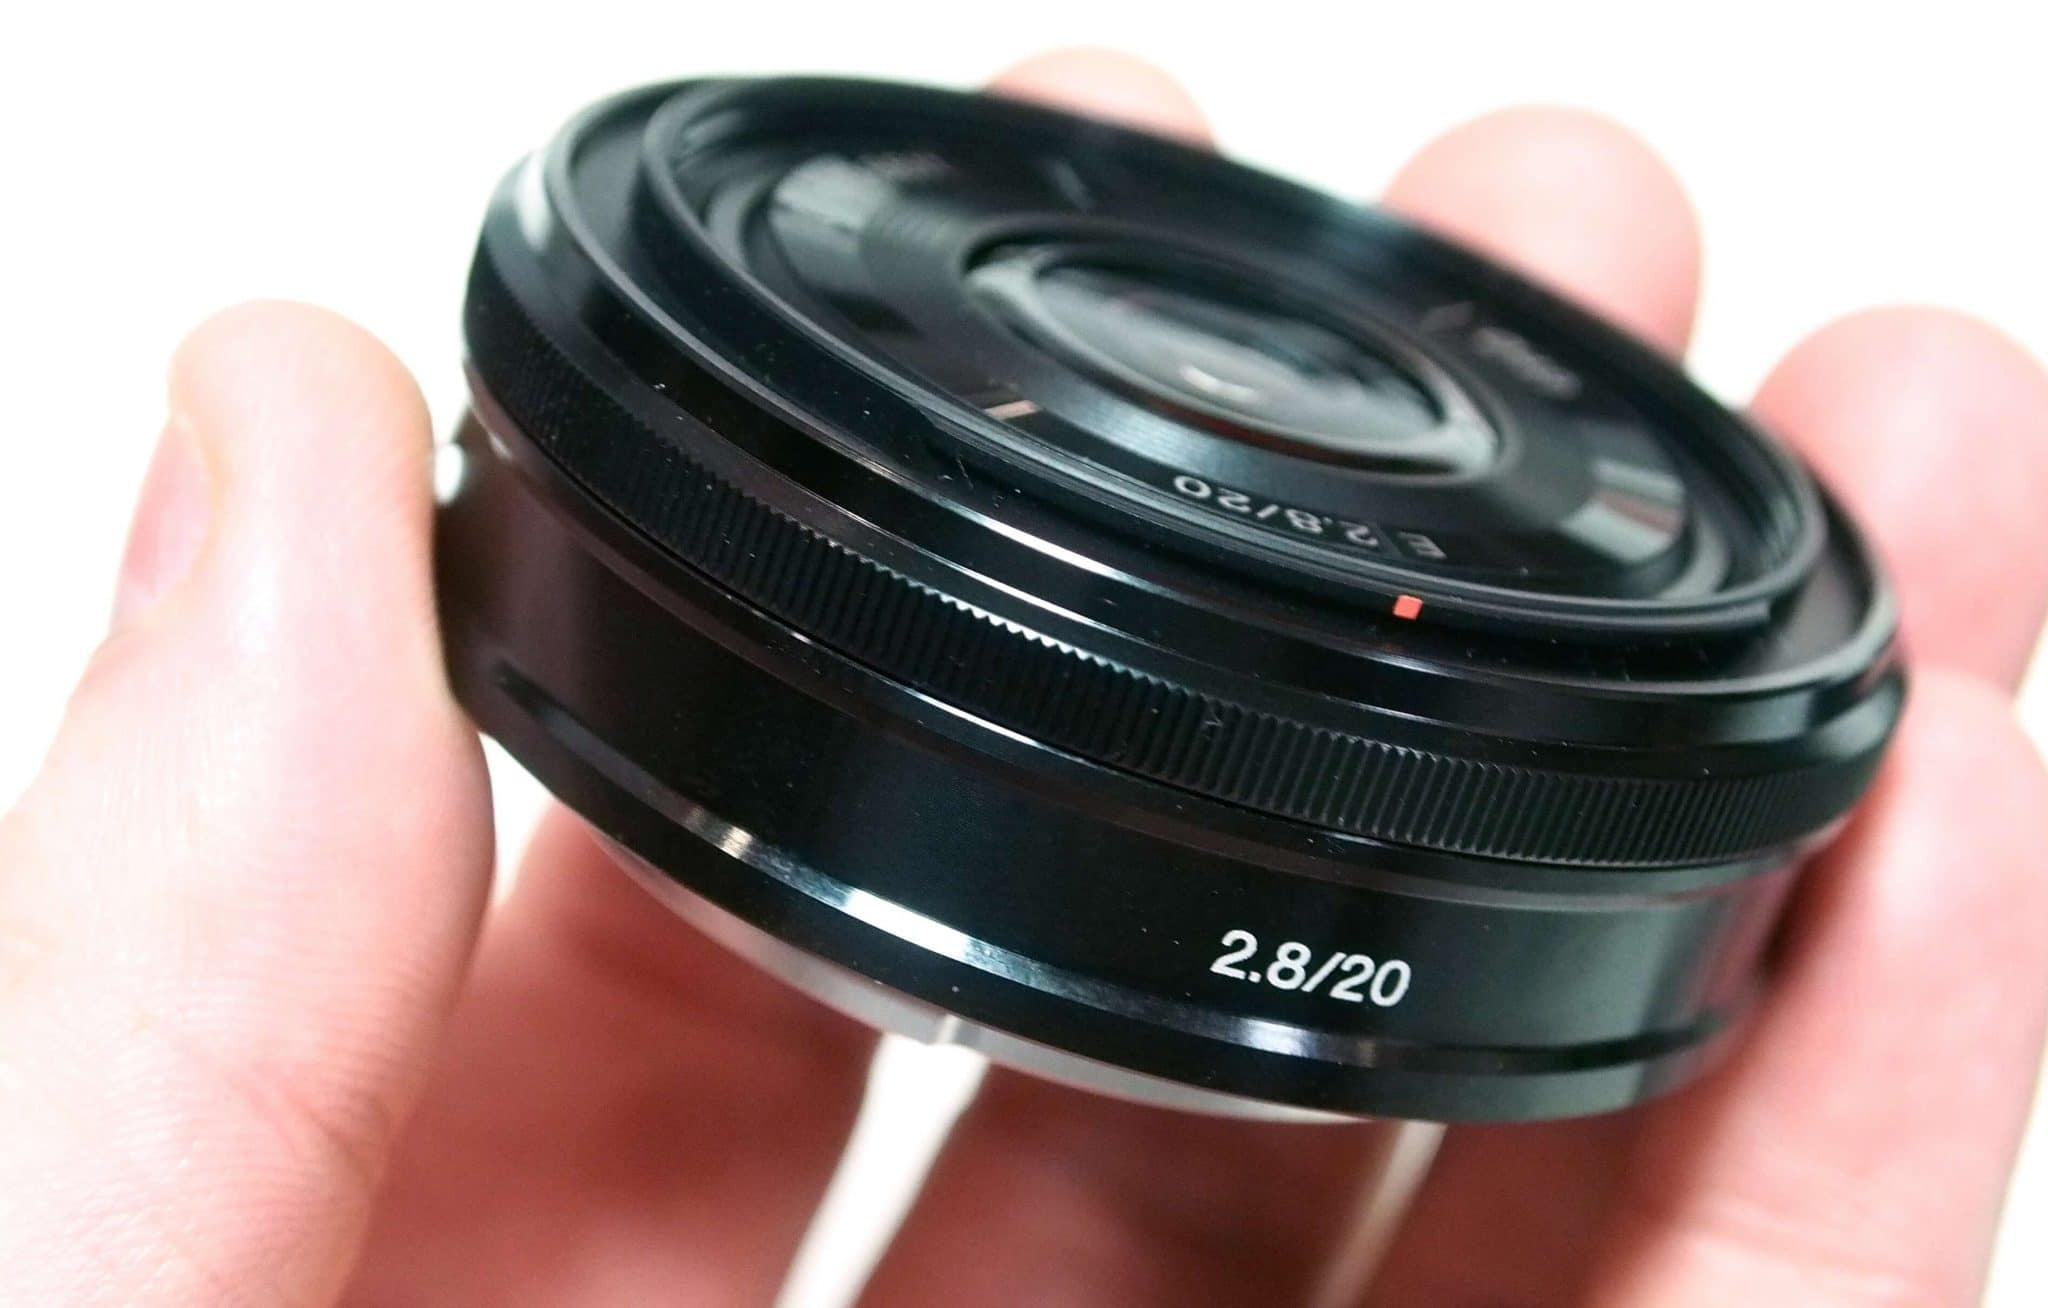 Lente Sony E 20mm f/2.8 SEL20F28 - Review